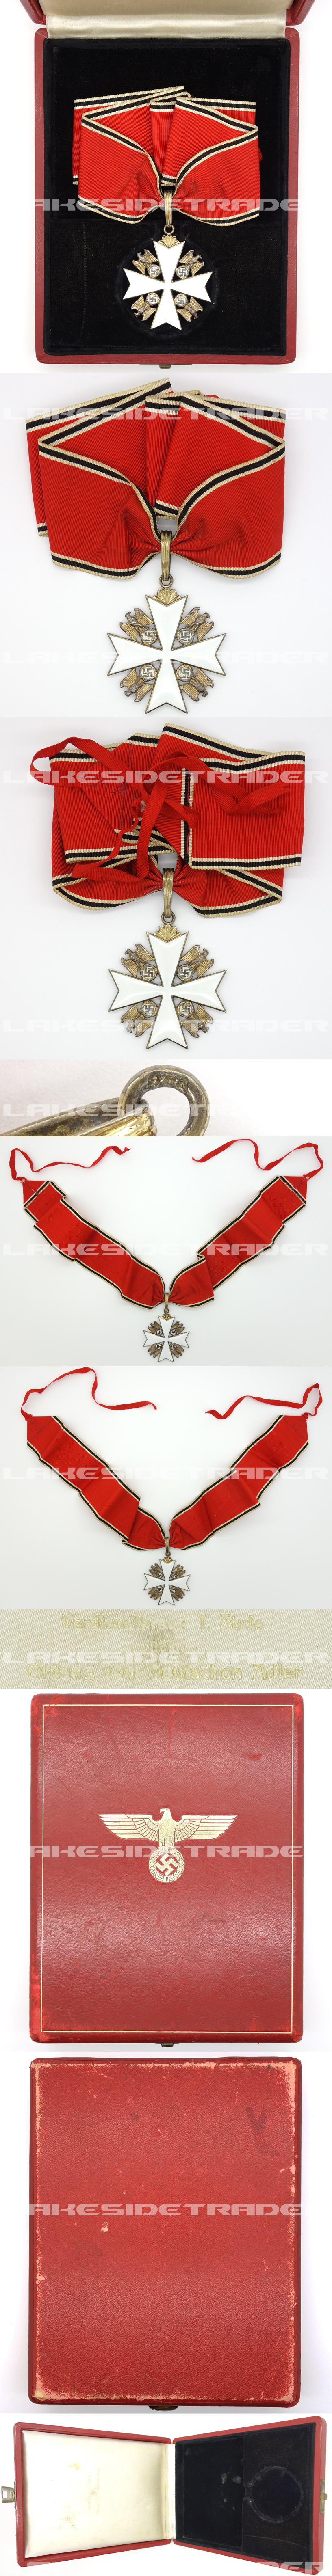 Cased 1st Class Eagle Order Neck Cross by Godet